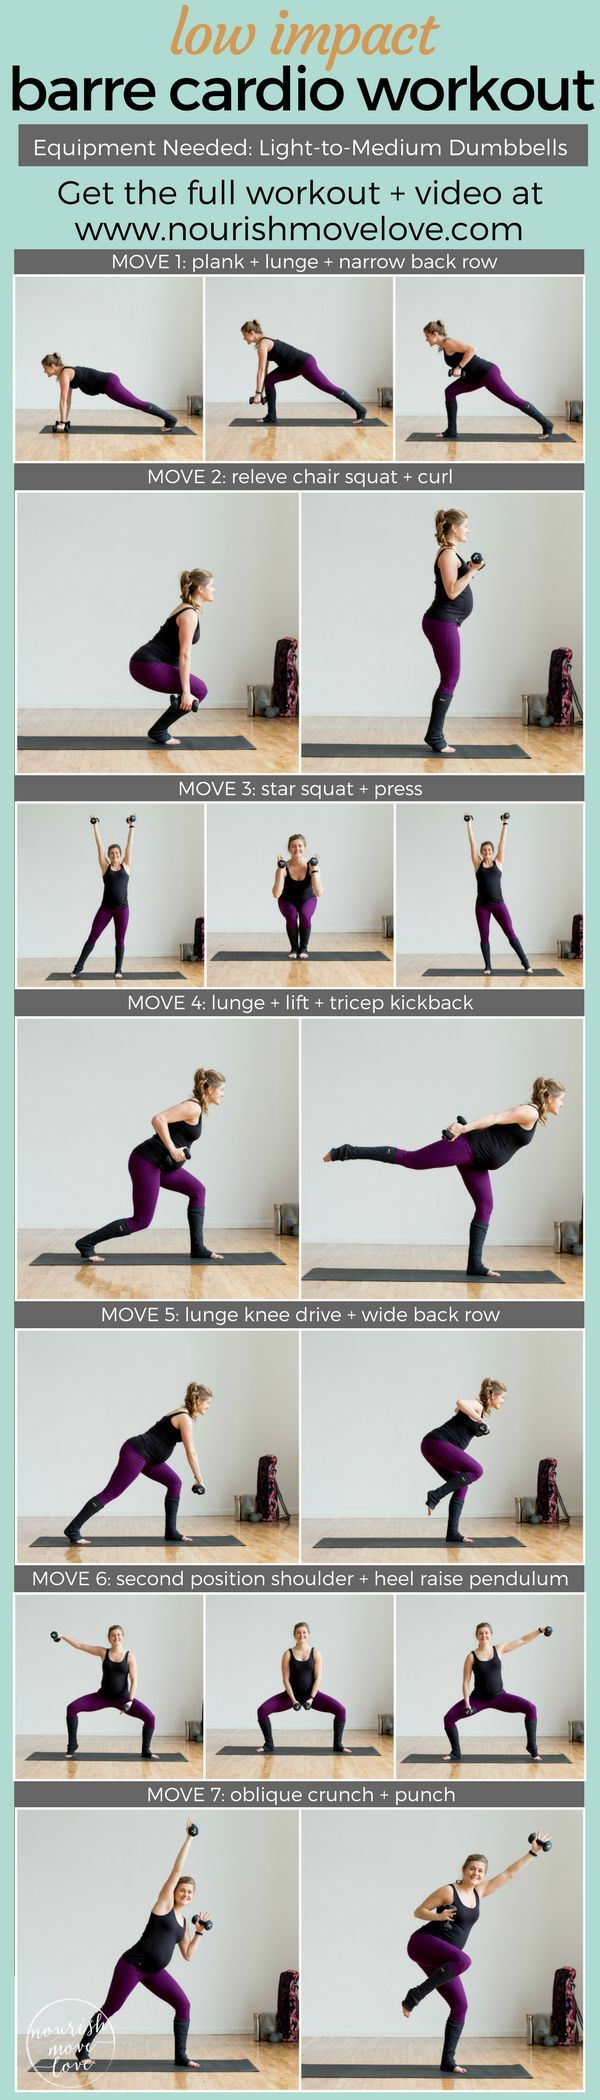 7 barre inspired exercises for a complete at home workout! Use light-to-medium dumbbells for this ballet inspired workout. Burn calories with these low impact but high intensity moves. Great for anyone with bad knees, runners who need an impact break, or